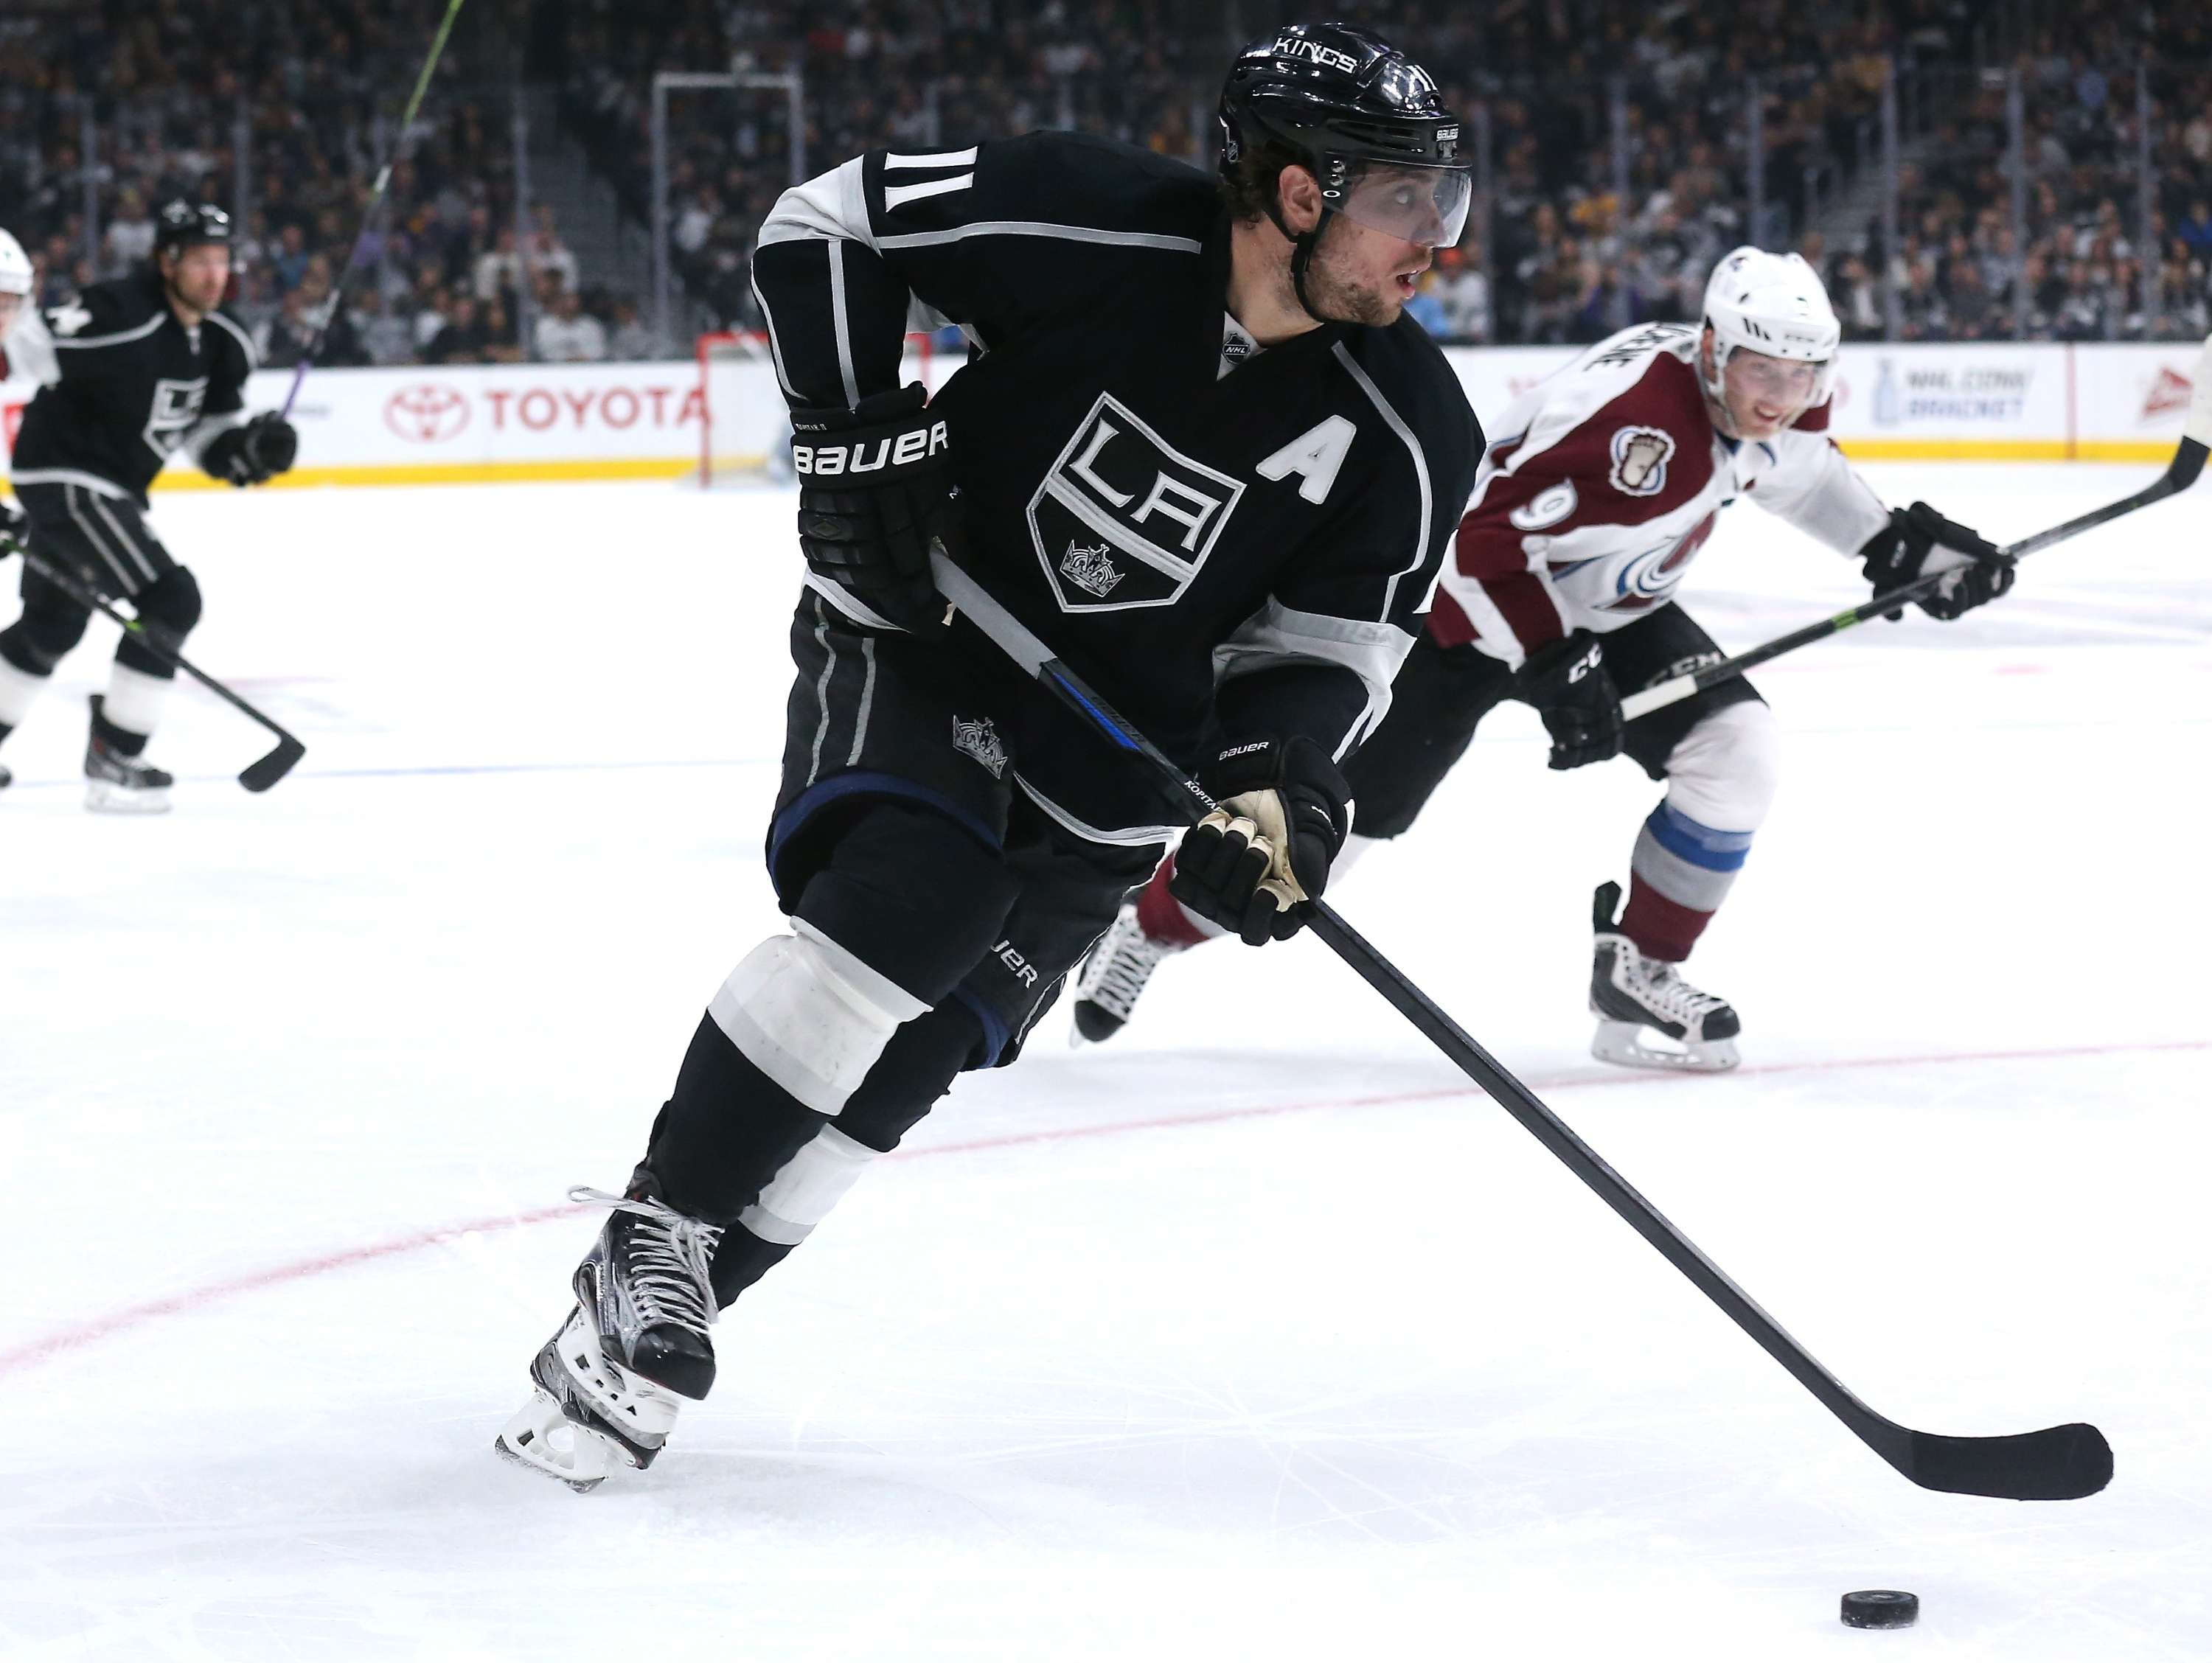 LOS ANGELES, CA - APRIL 04:   Anze Kopitar #11 of the Los Angeles Kings skates with the puck against the Colorado Avalanche at Staples Center on April 4, 2015 in Los Angeles, California.  (Photo by Stephen Dunn/Getty Images)